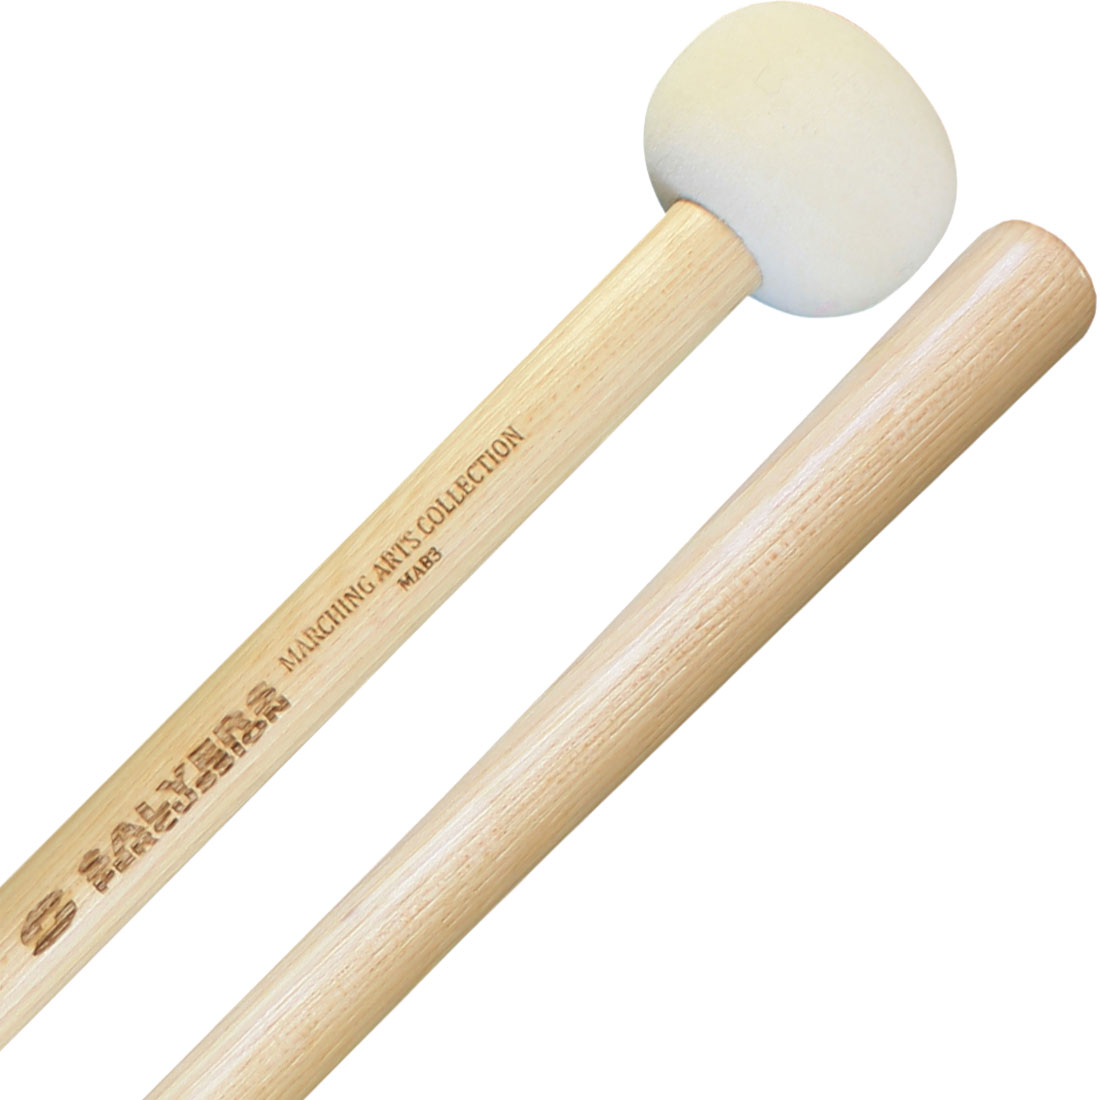 Salyers Percussion MAB3 Marching Arts Collection Medium Marching Bass Mallets